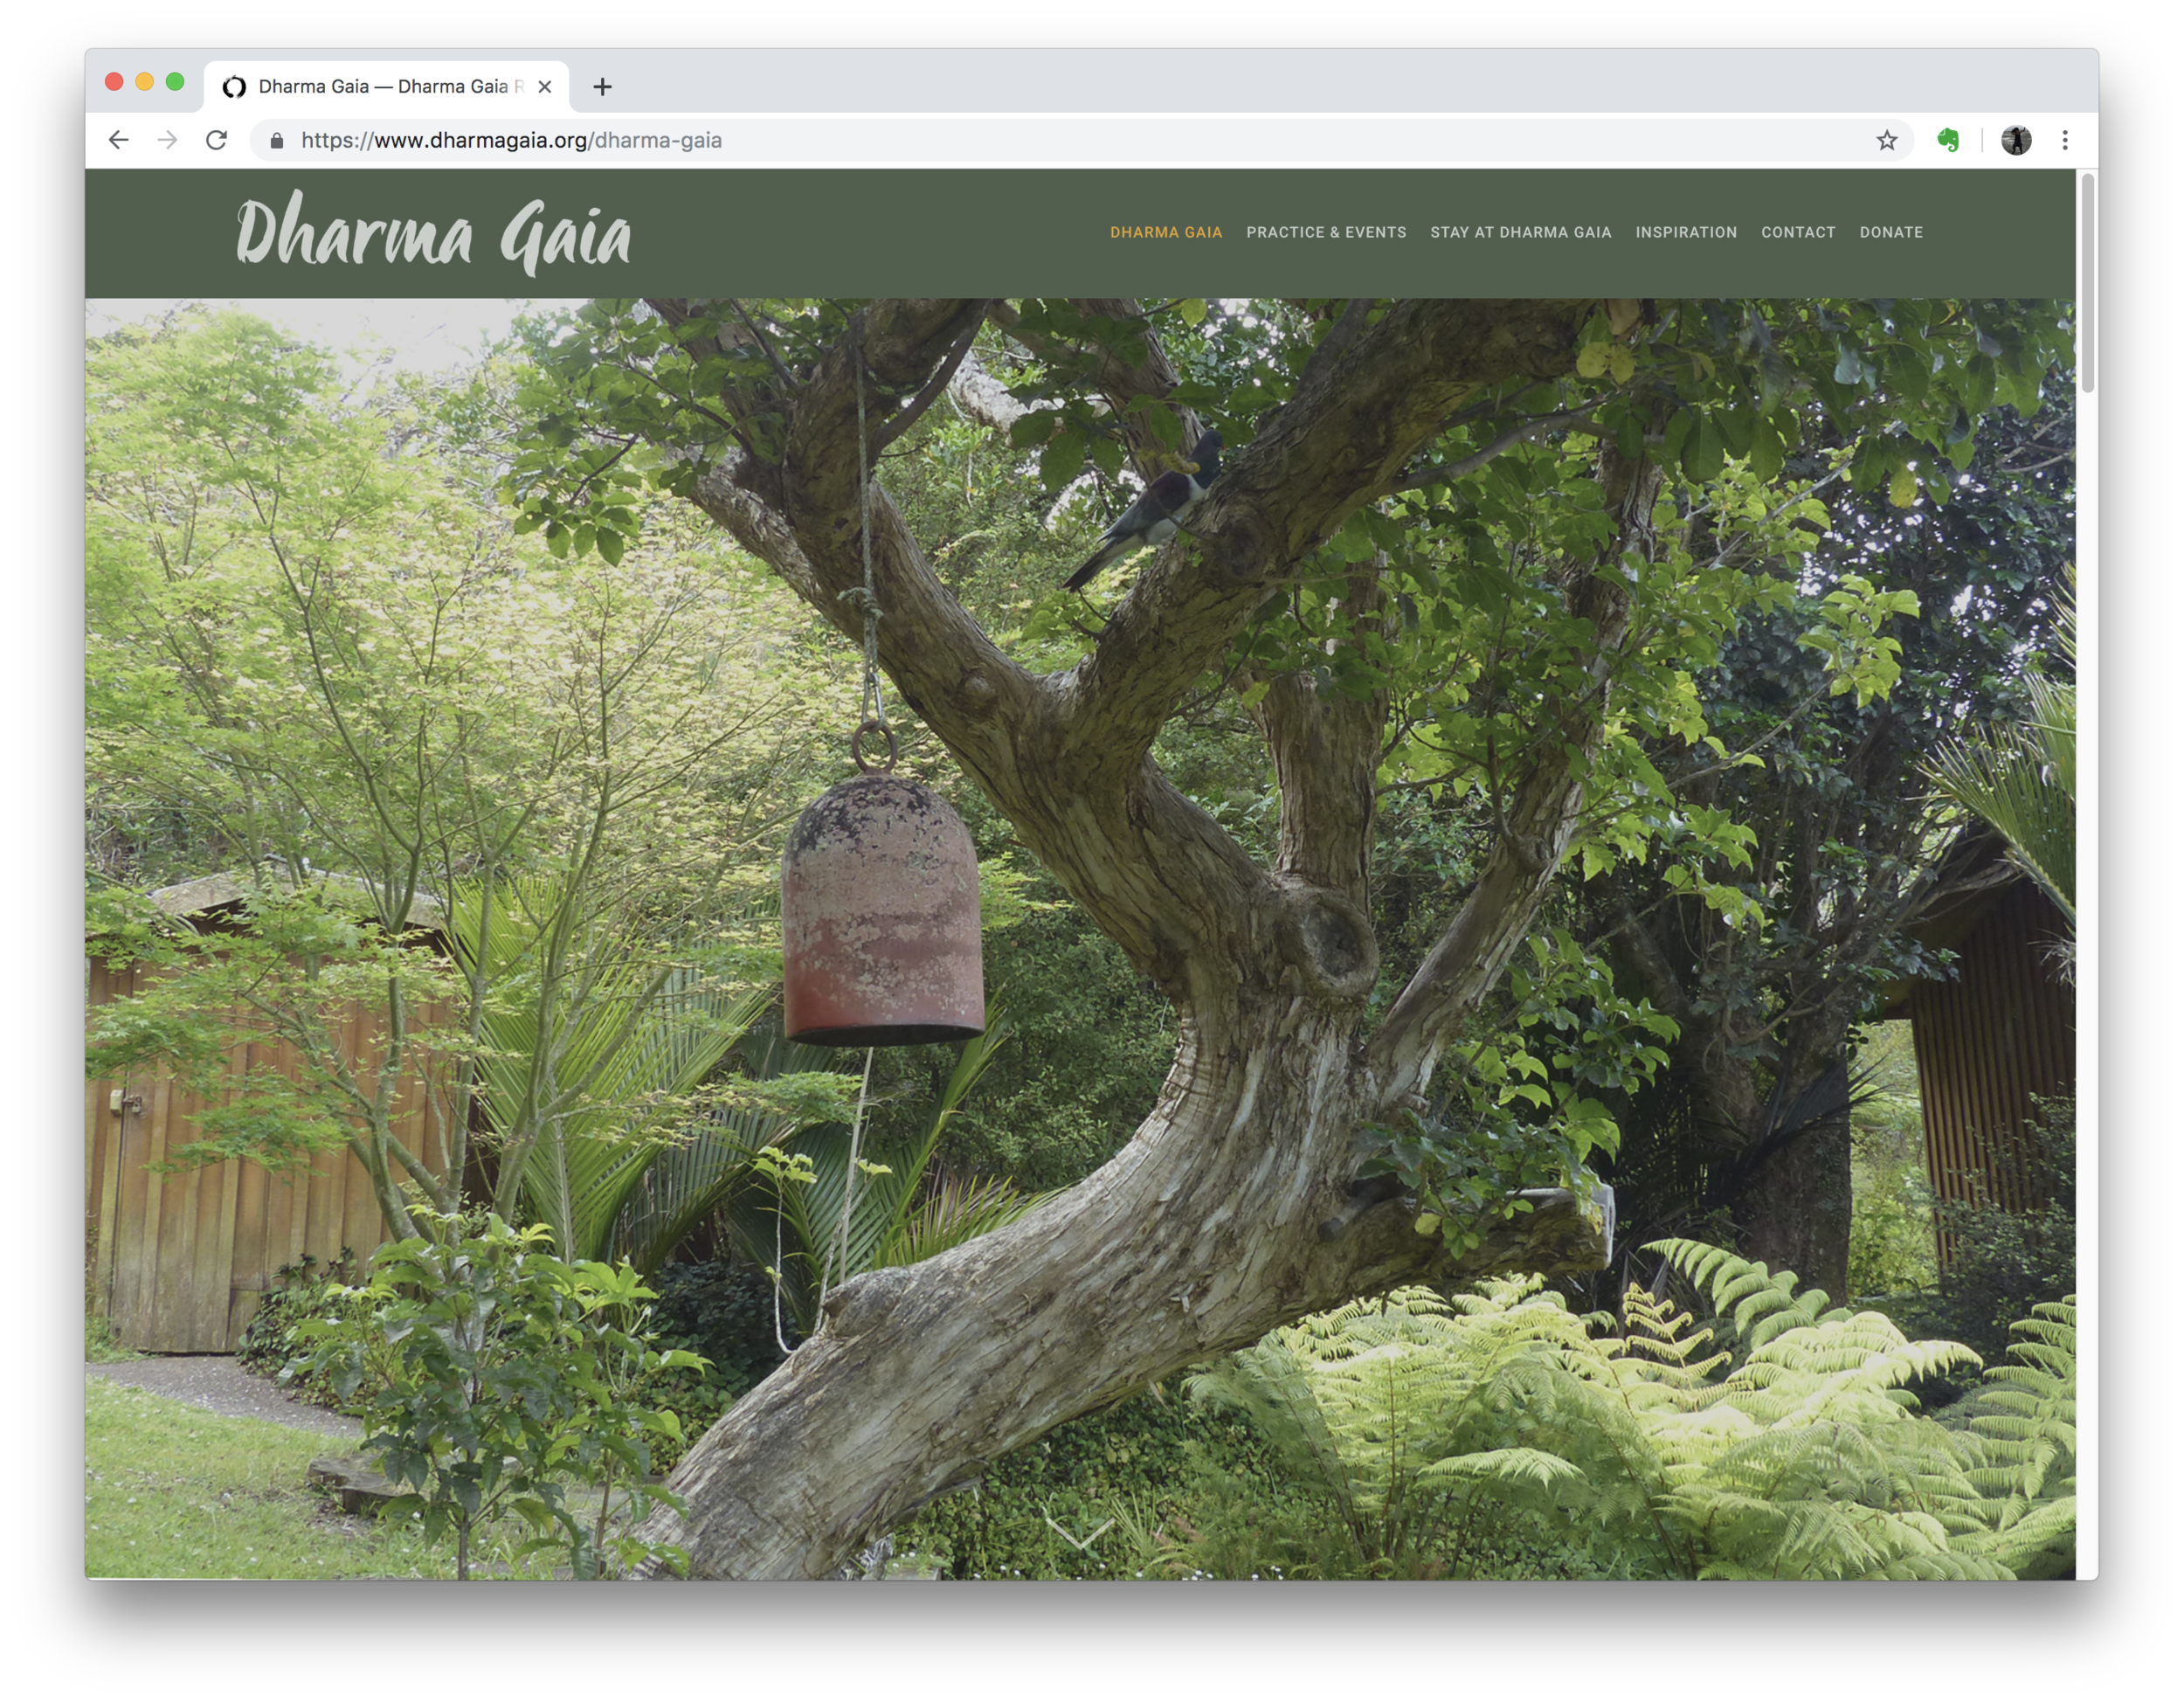 Dharma Gaia Website (Squarespace)